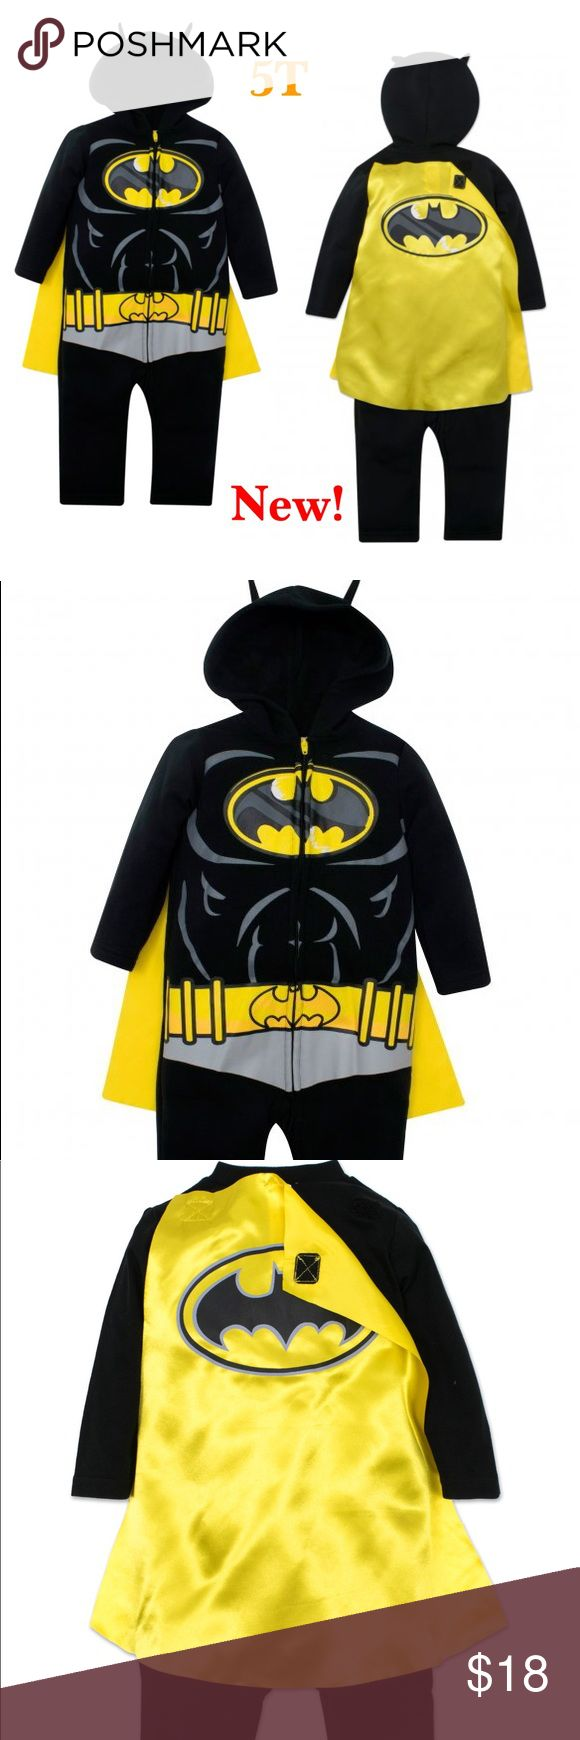 Toddler Boys' Batman Costume Coverall with Cape Features:  Color: Black Zip-up coverall  Material: 100% Polyester Velcro-detachable satin cape Batman design printed on front and cape  New with tag! Costumes